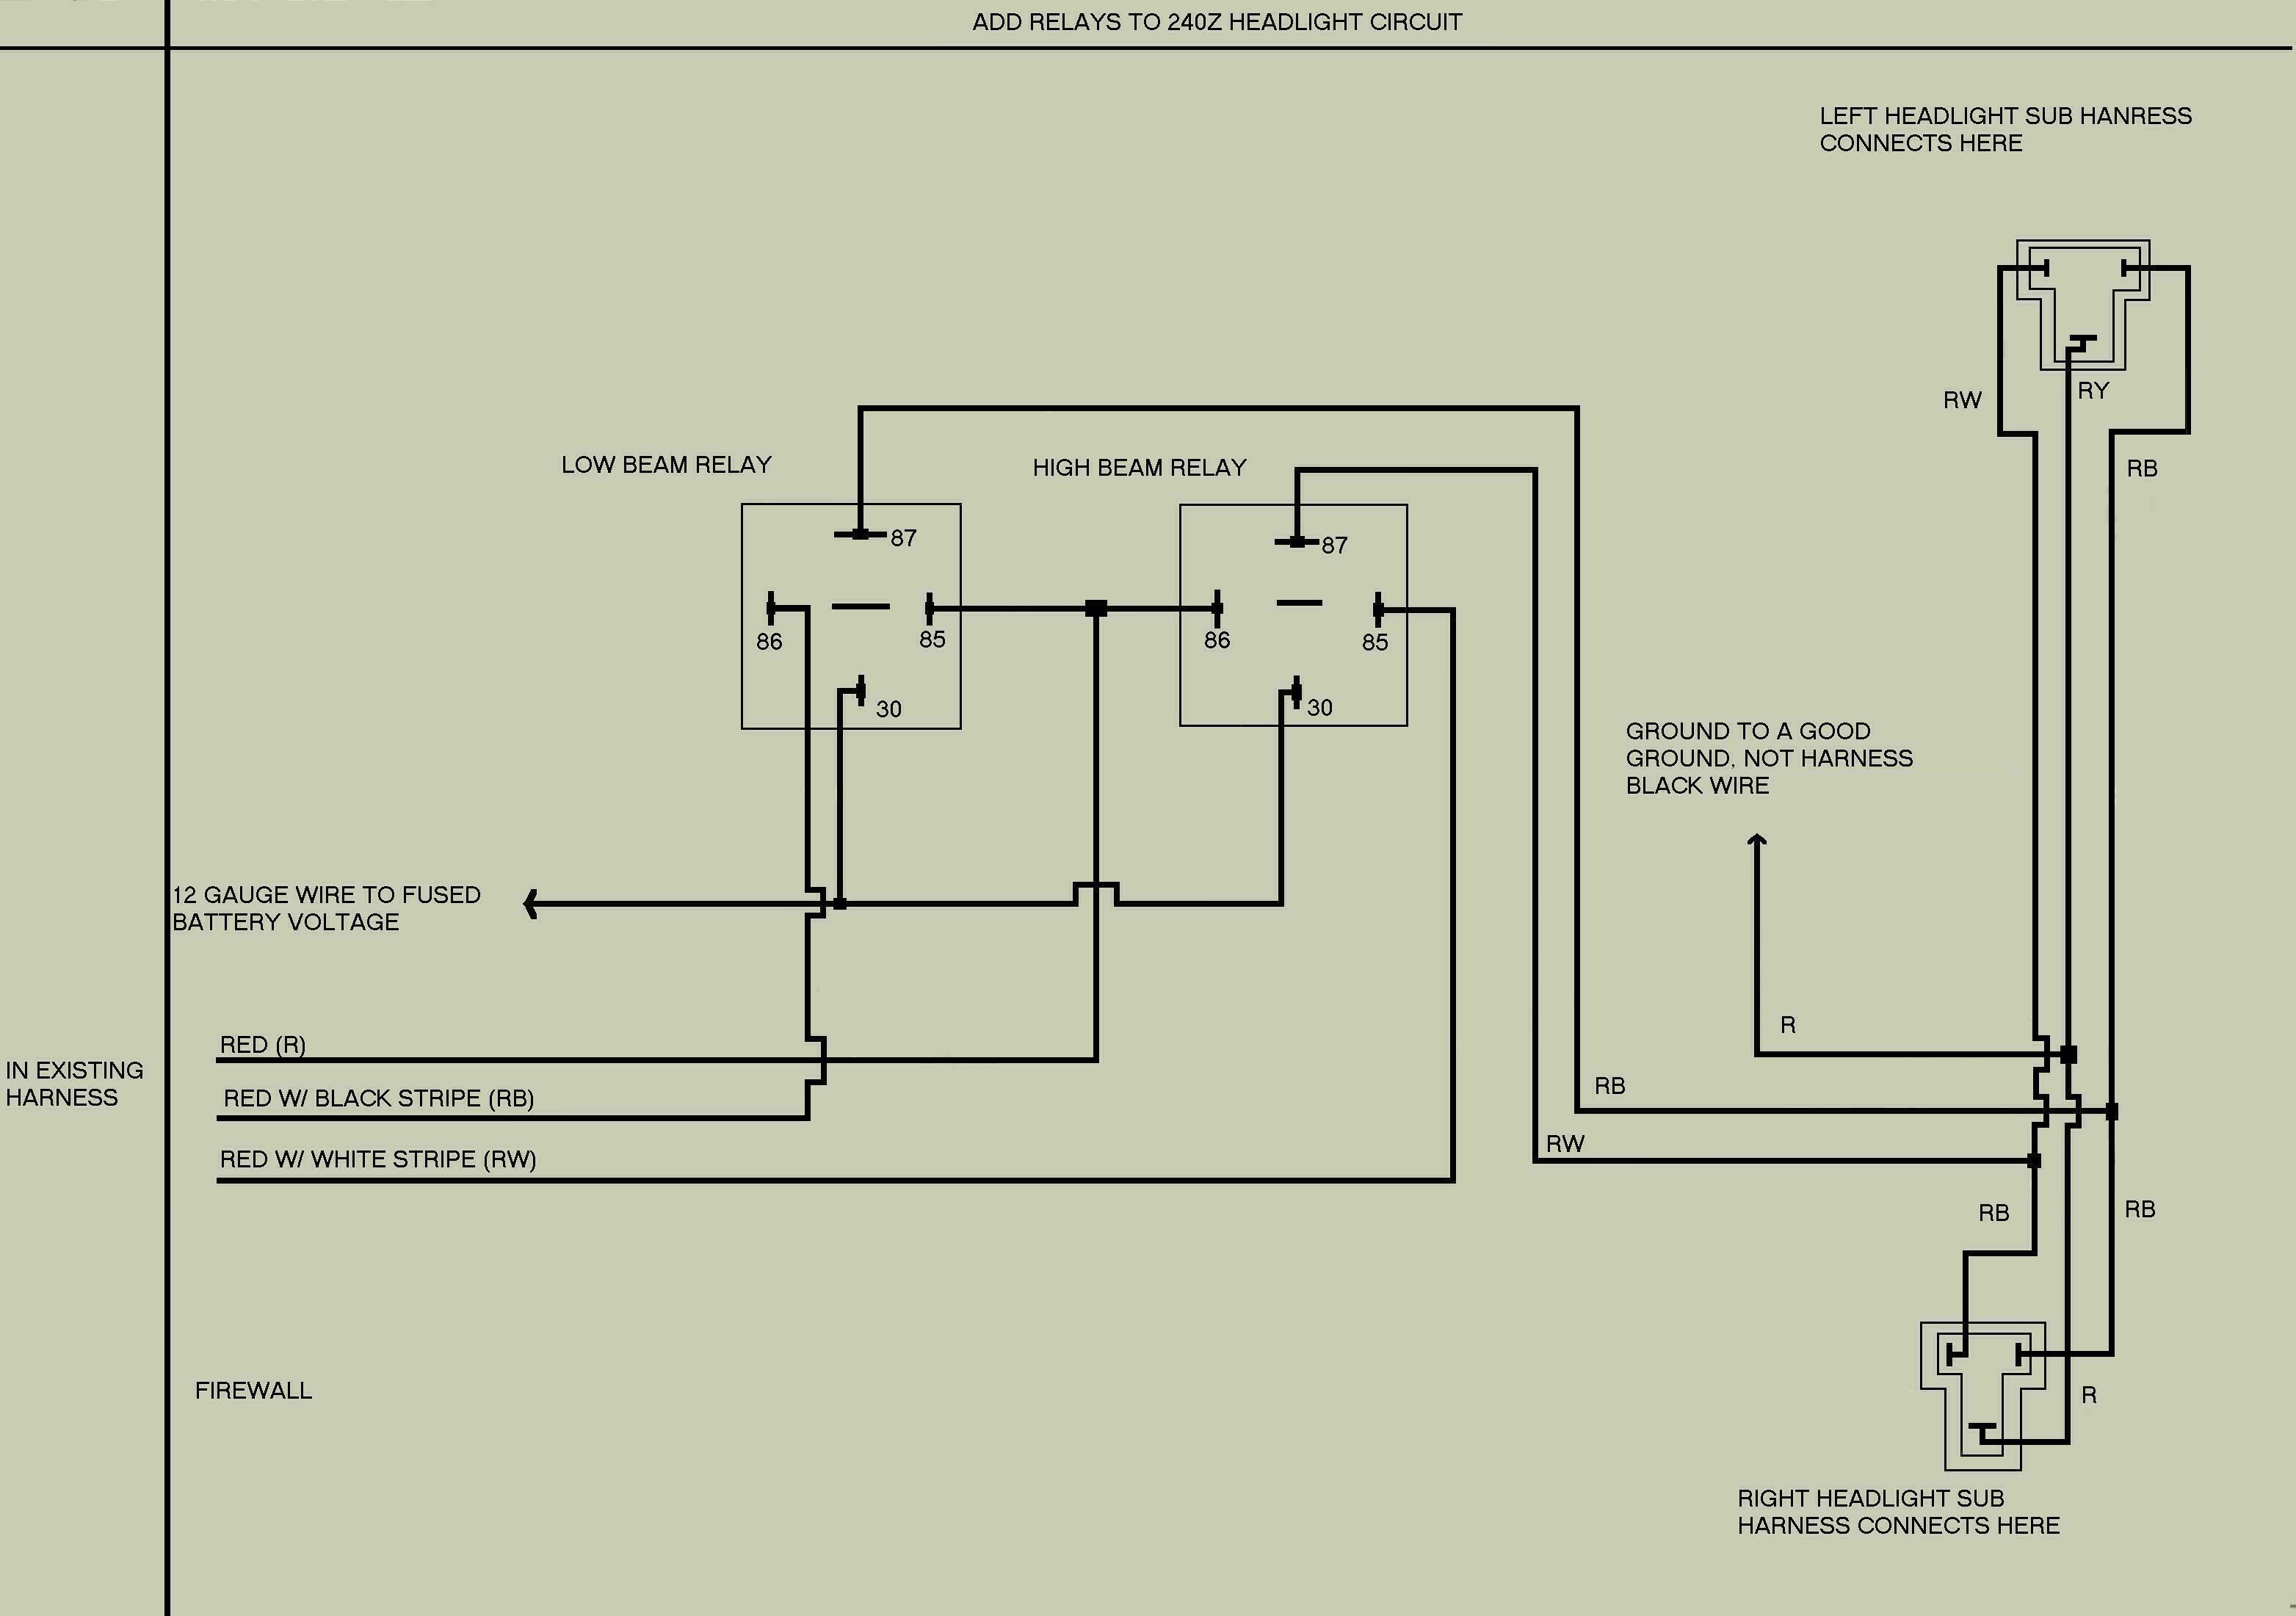 click here for a circuit diagram